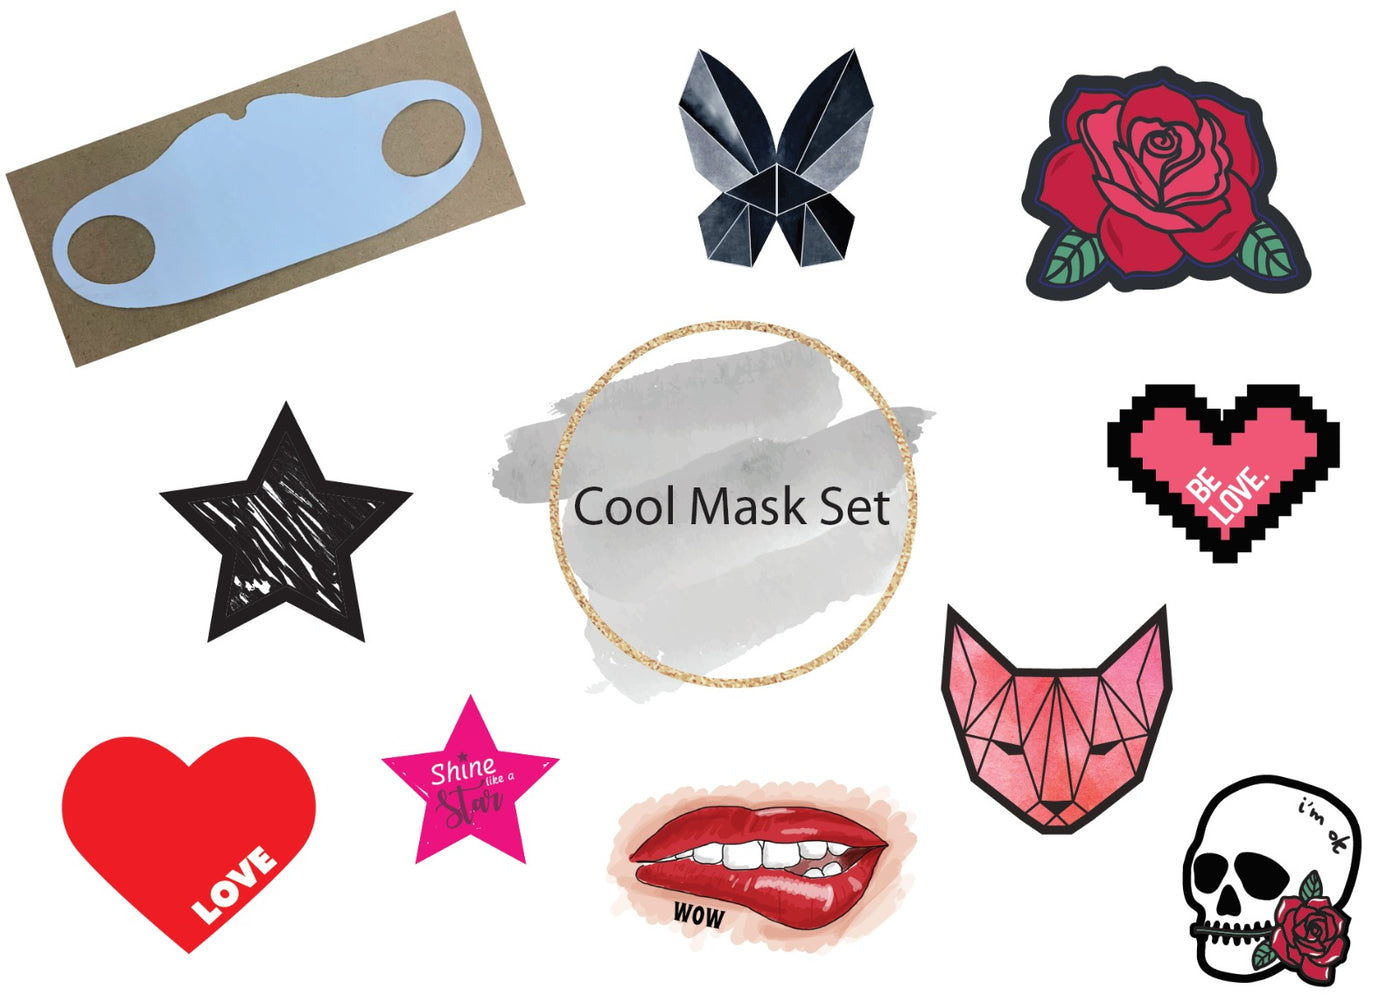 Cool mask Set